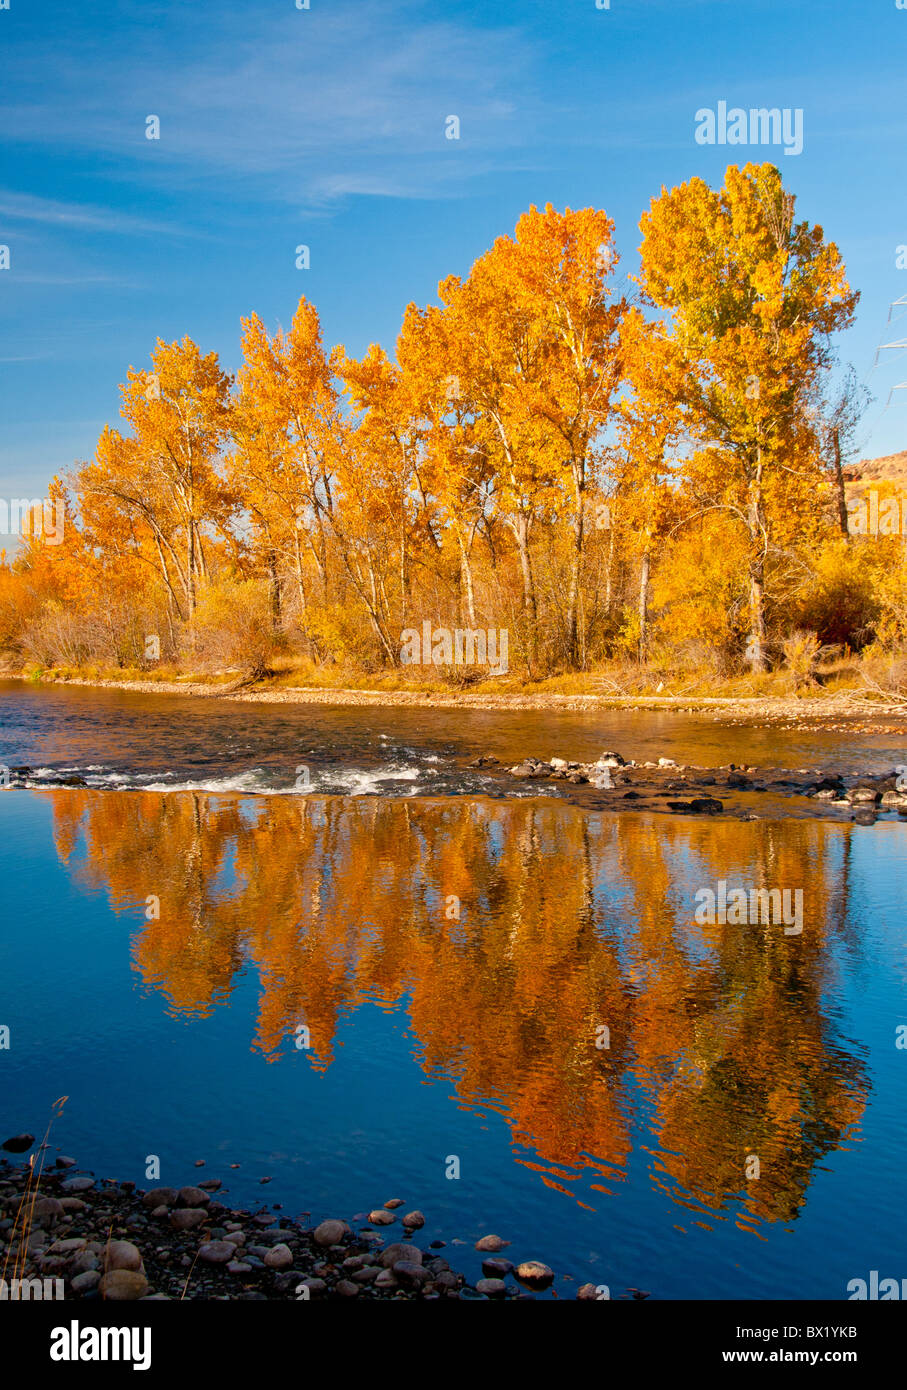 USA, Idaho, City of Boise, Cottonwood trees reflecting fall colors in the Boise River, Boise River Greenbelt. - Stock Image